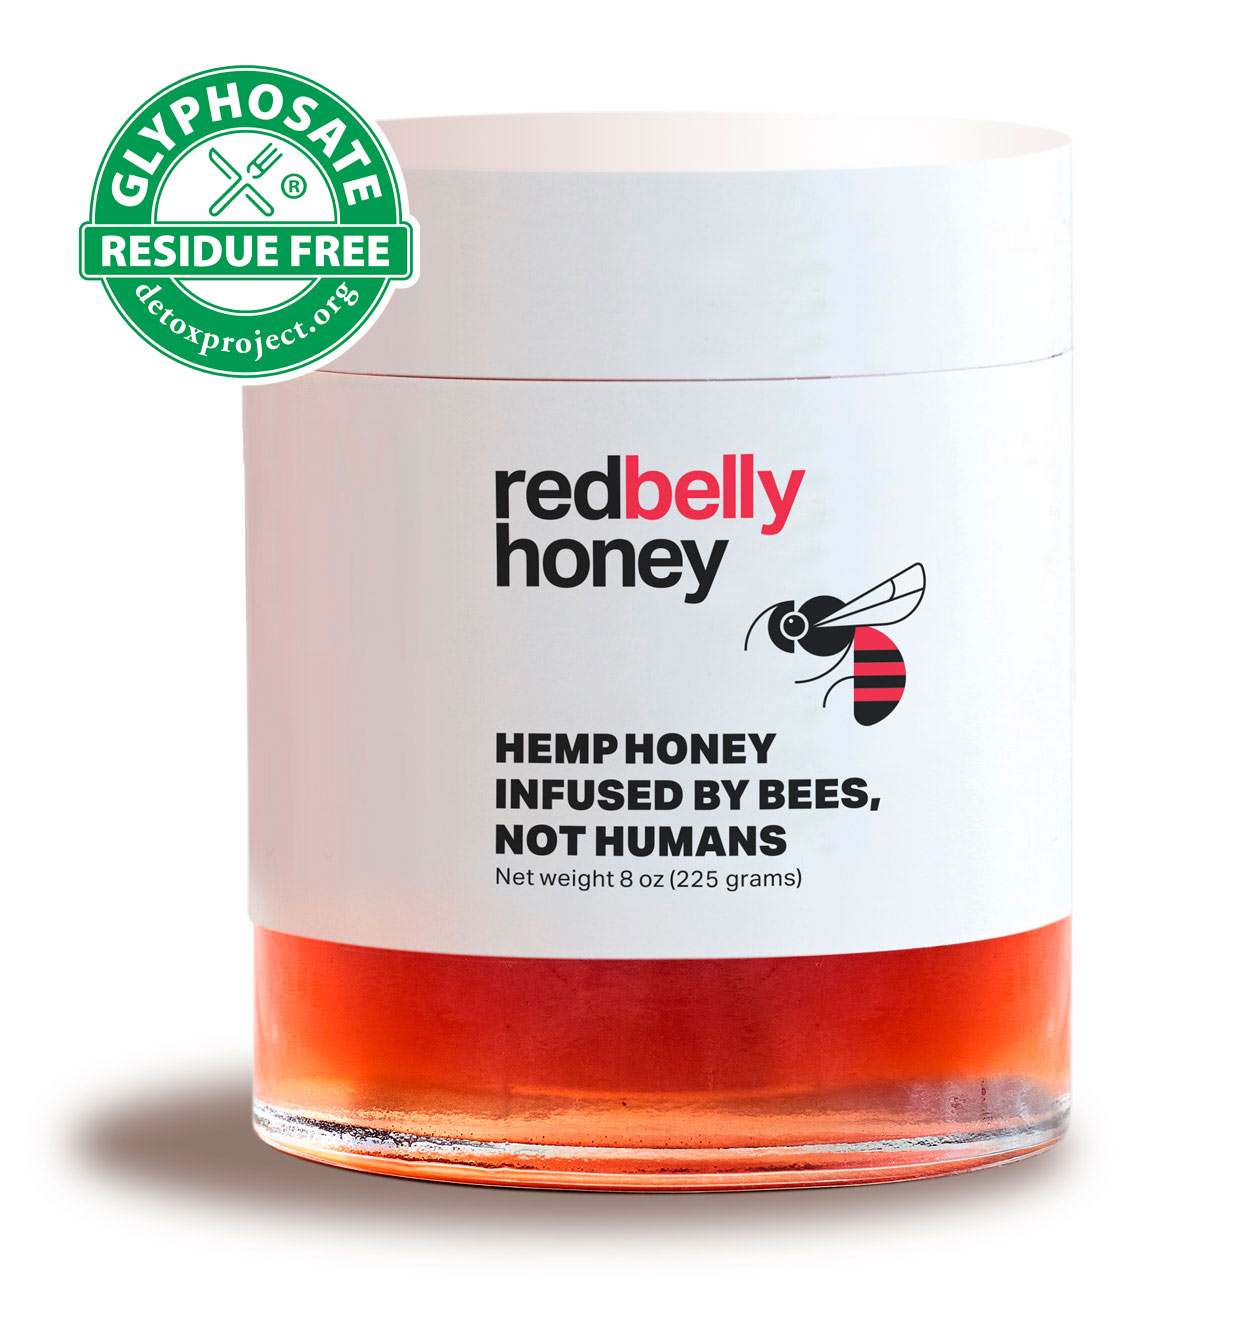 Red Belly Honey is Certified Glyphosate Free by The Detox Project